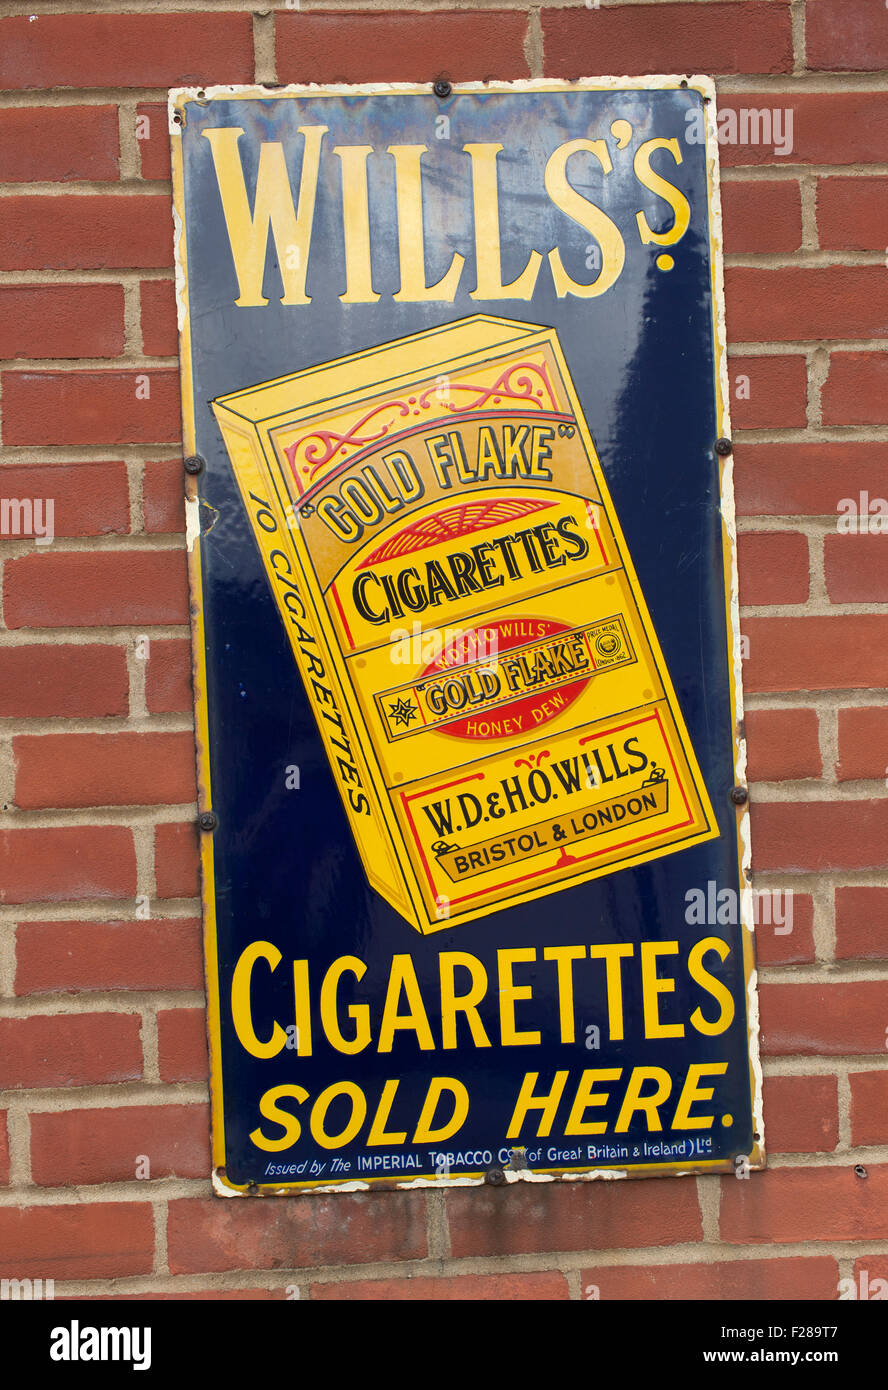 Wills's vintage metal advertisement sign. - Stock Image